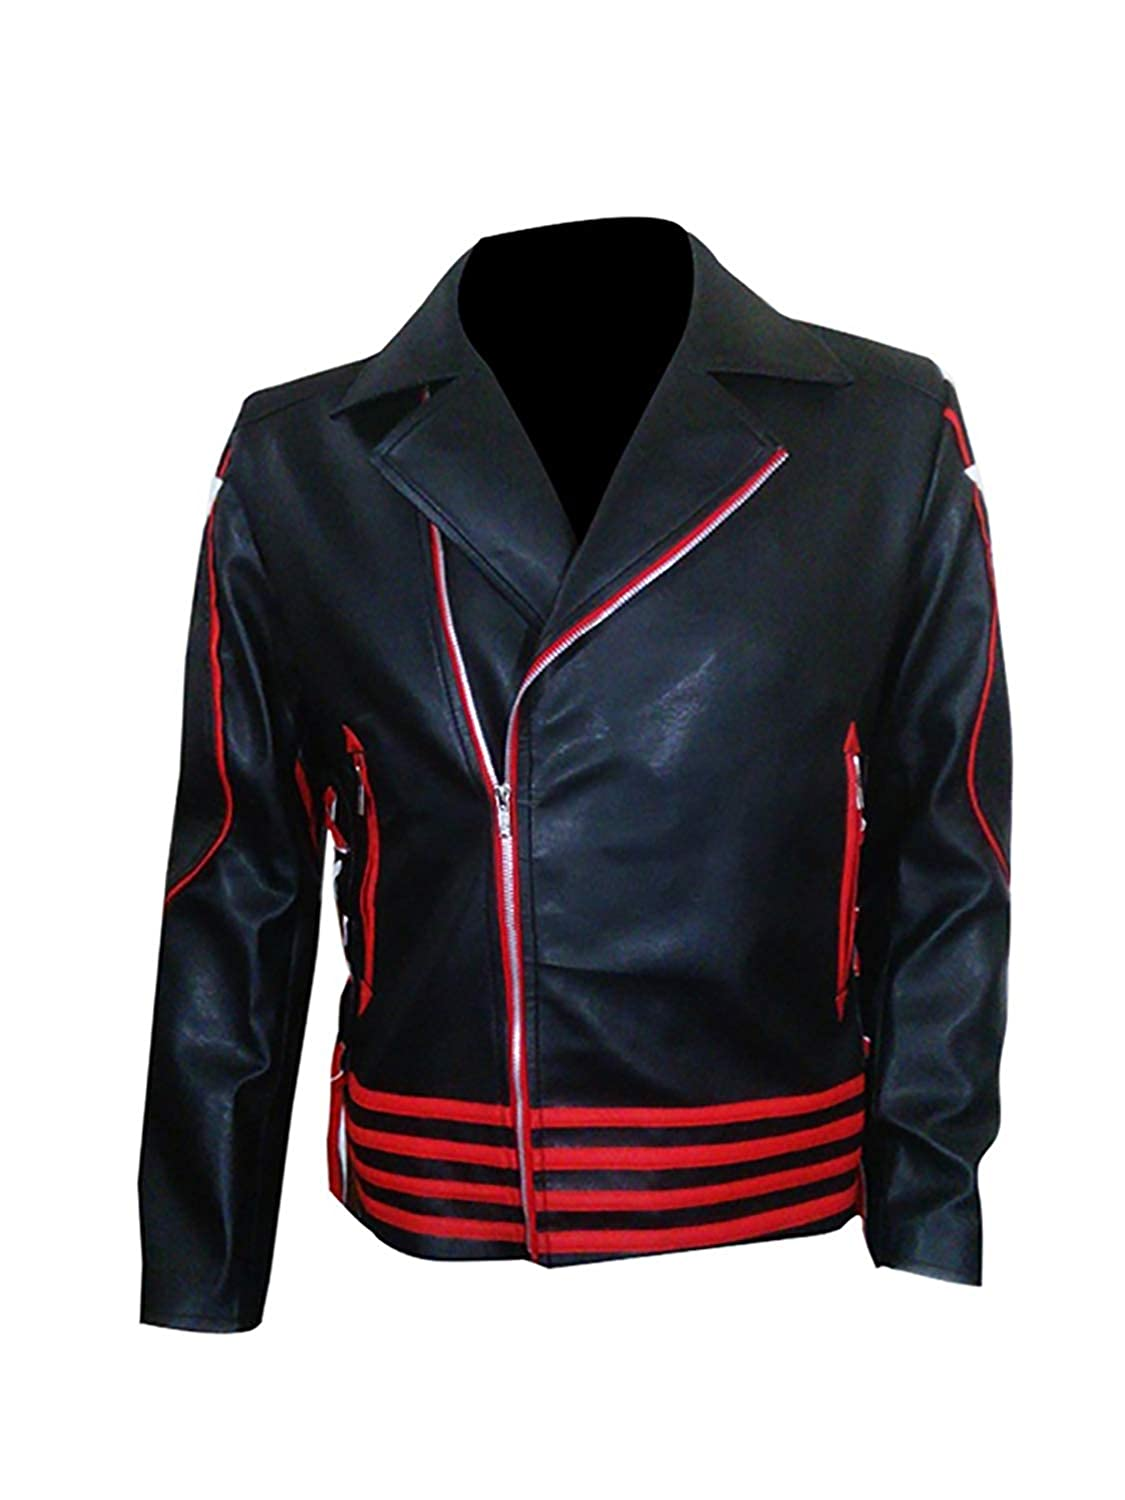 Freddie Mercury Jacket Queen Concert Belted Motorcycle Yellow Leather Jacket Red Black Costume